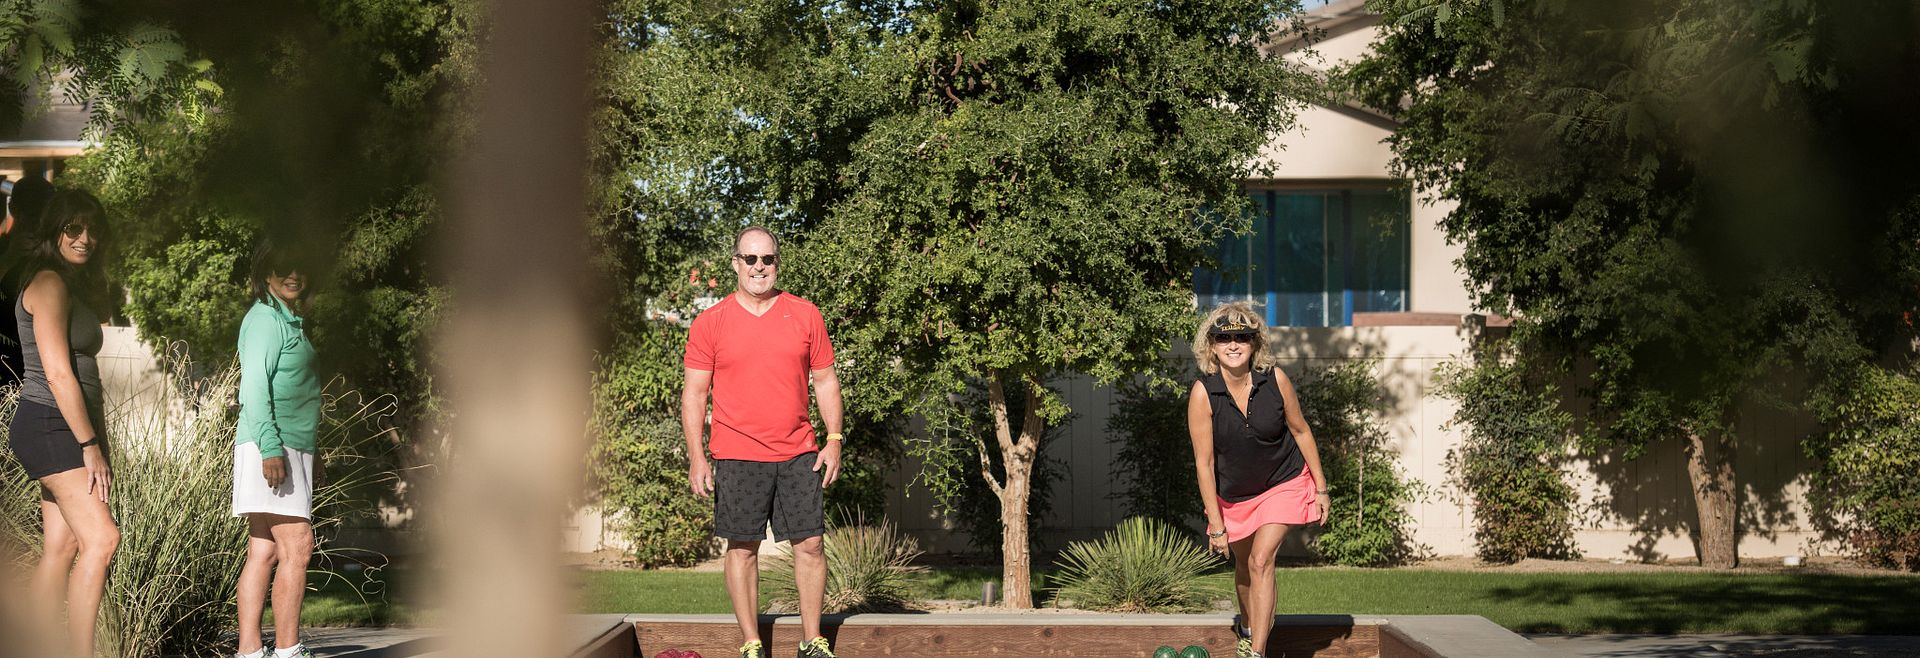 Trilogy Polo Club Homeowners Playing Pickleball